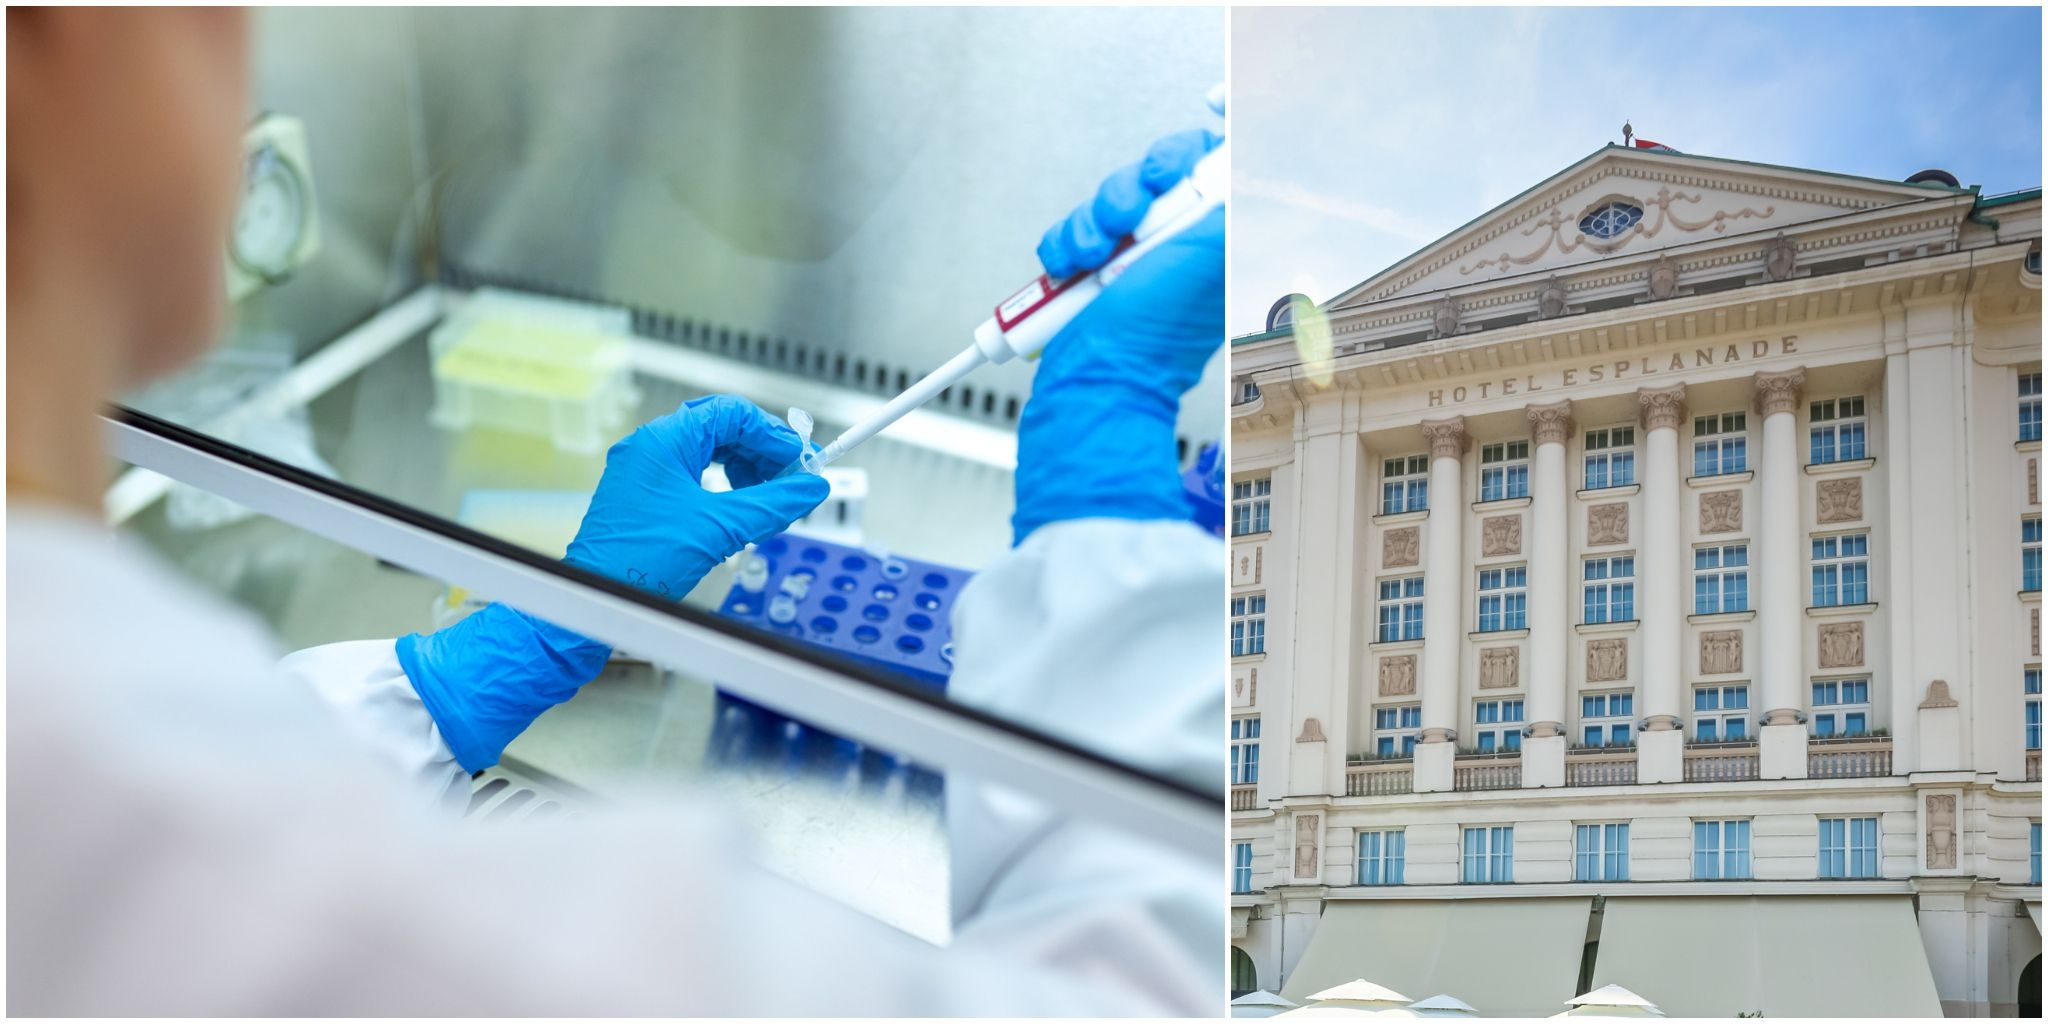 Zagreb's Esplanade Hotel now offers  COVID19 PCR, ANTIGEN AND ANTIBODY TESTING